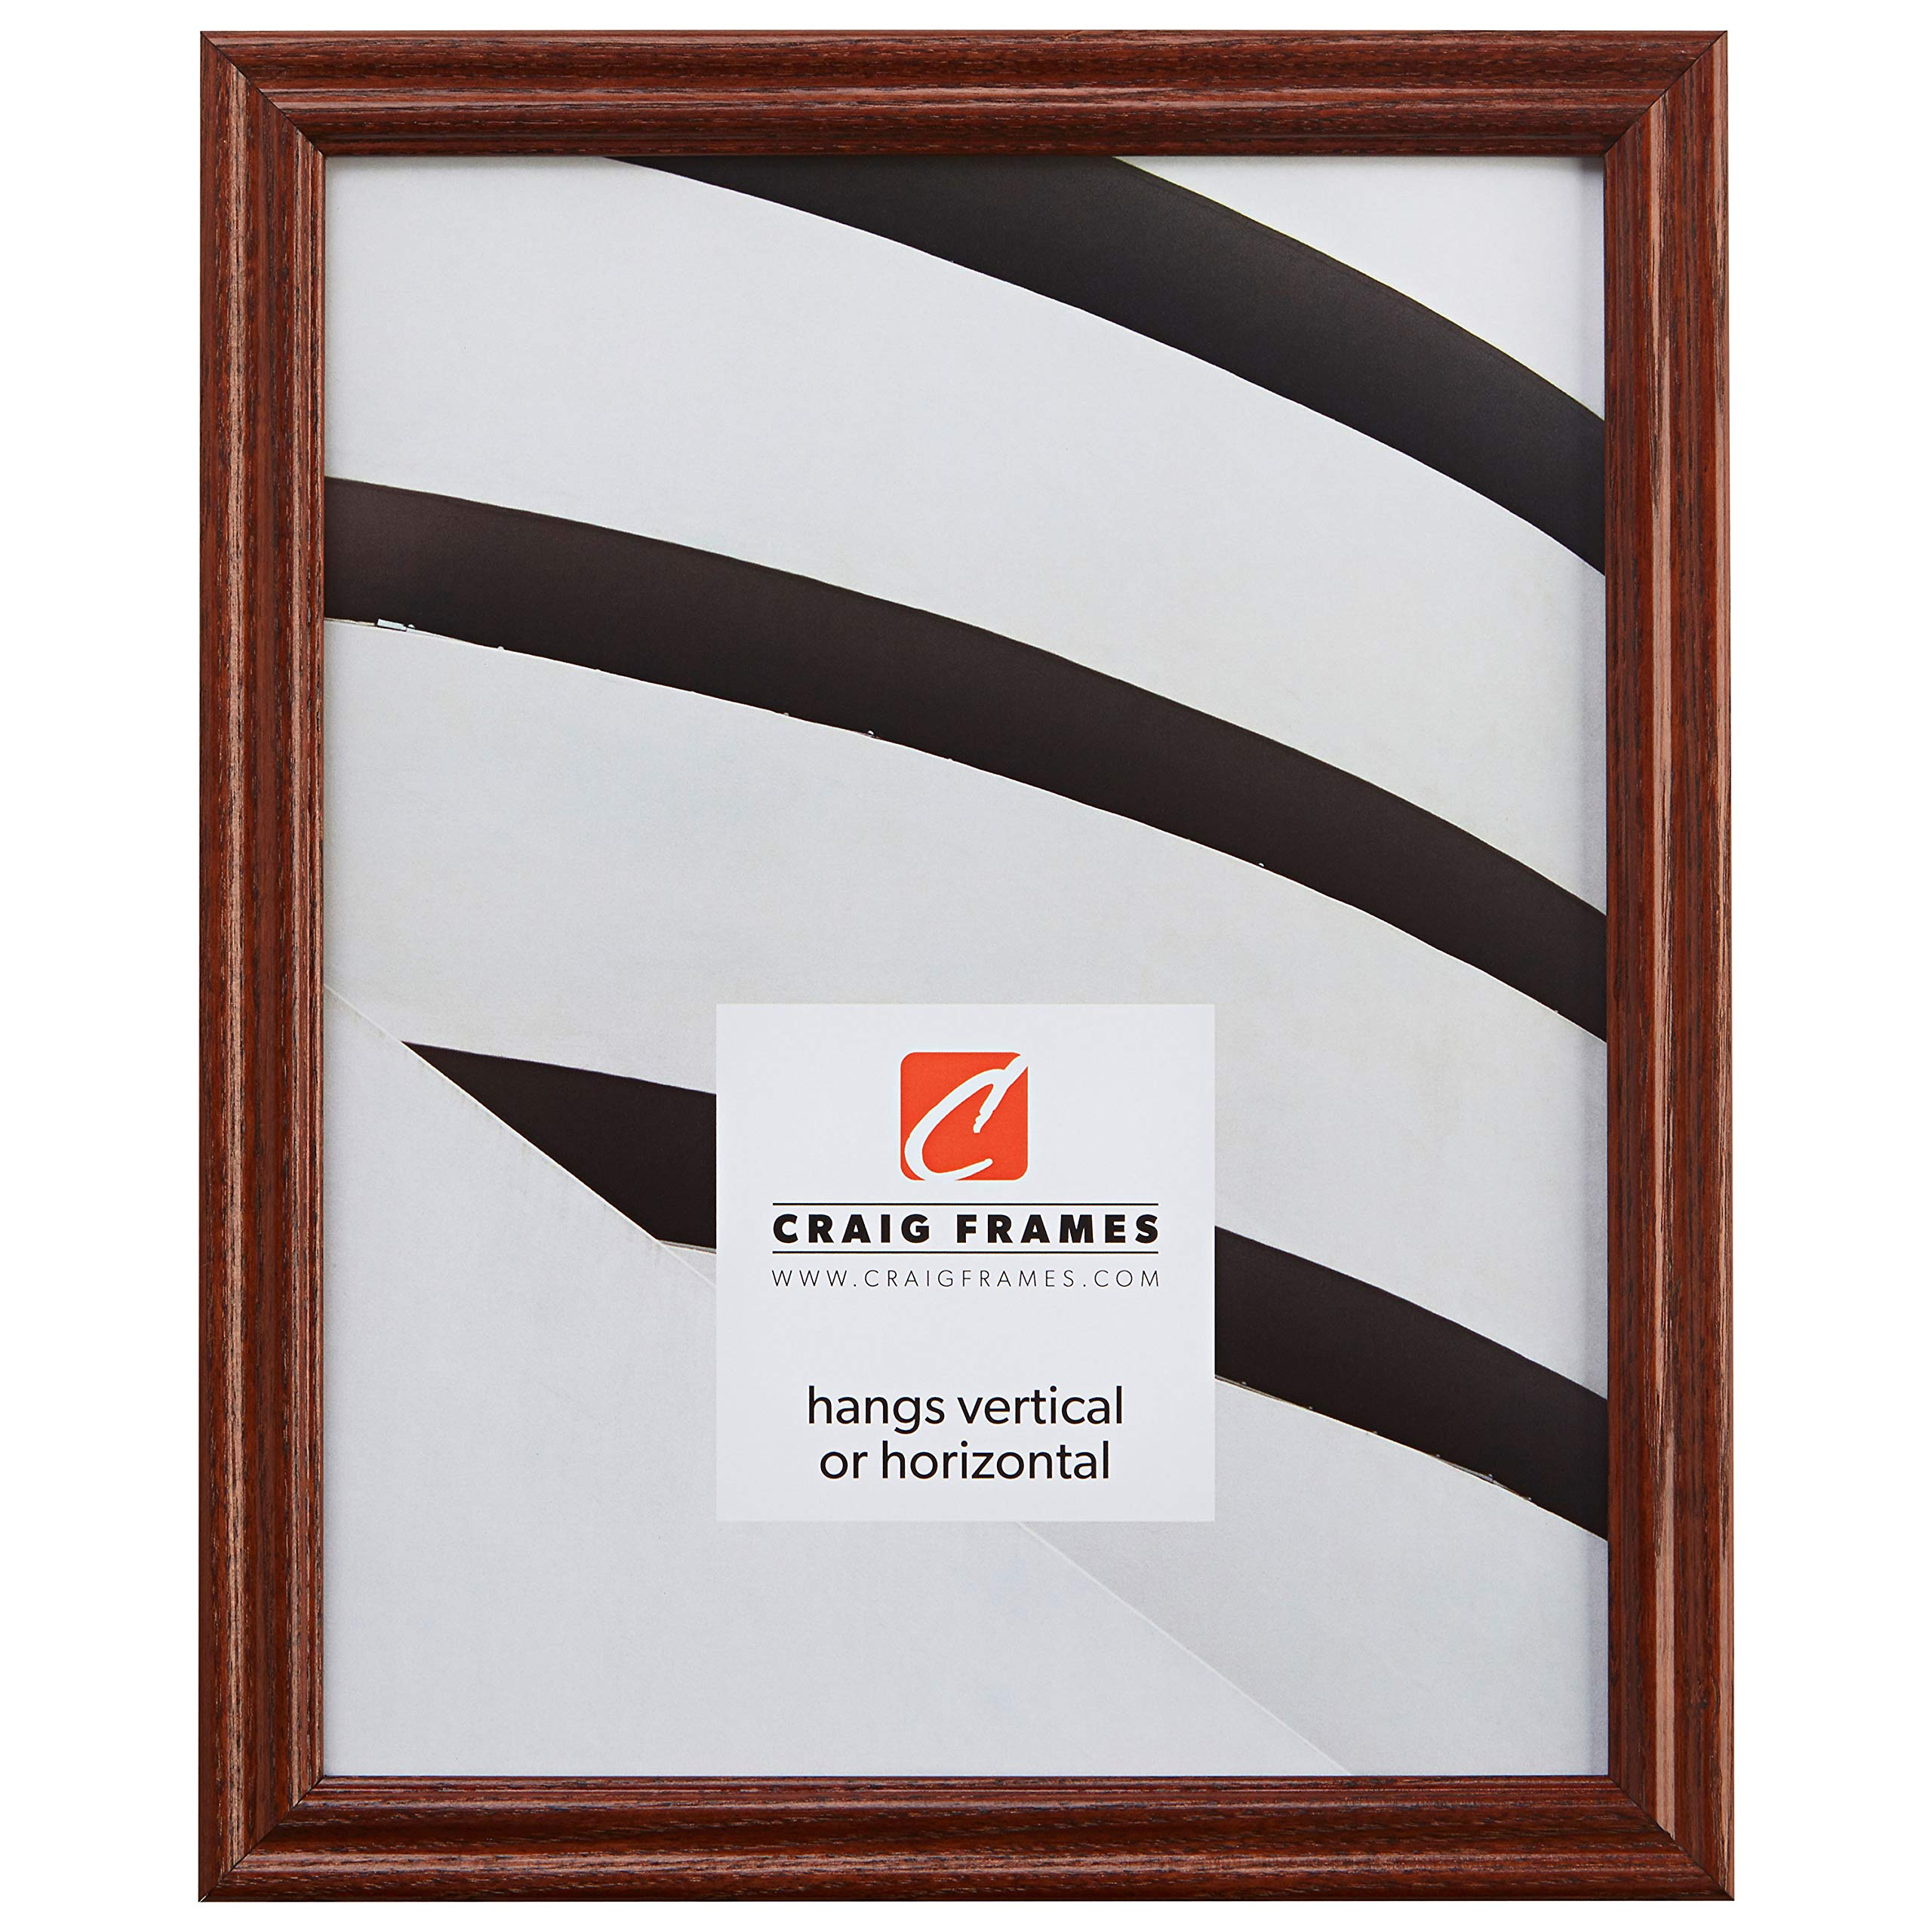 Craig Frames 200ASH 22 by 34-Inch Picture Frame, Wood Grain Finish, 0.75'' Wide, Walnut Brown by Craig Frames